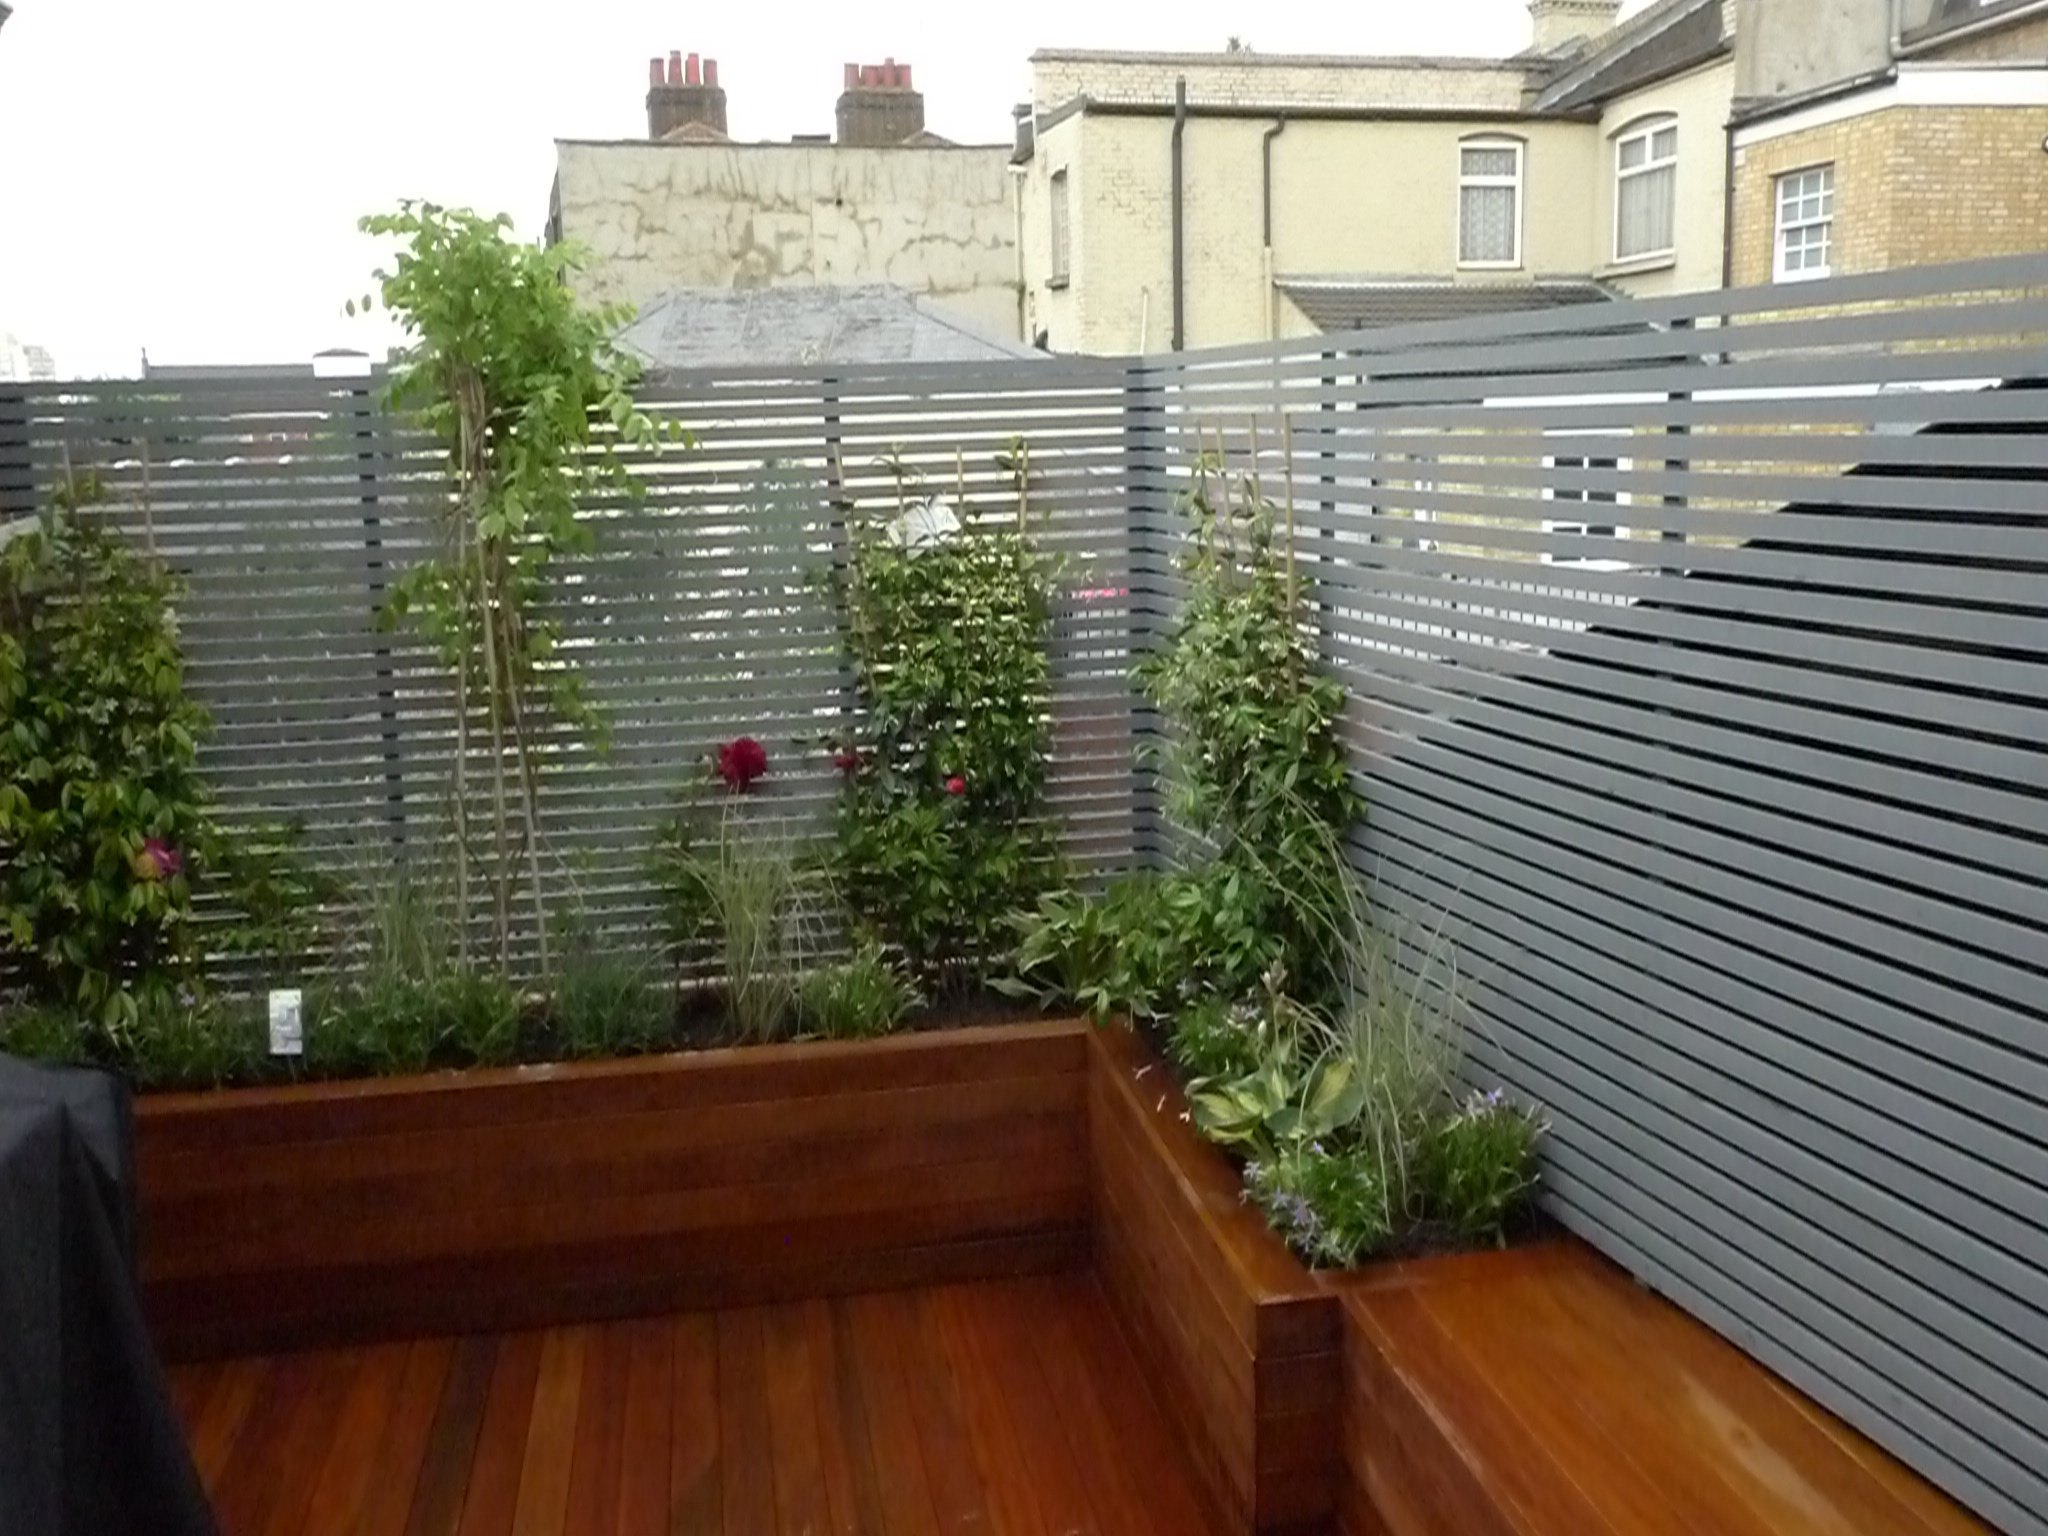 London small roof garden ideas | flowergardengirl